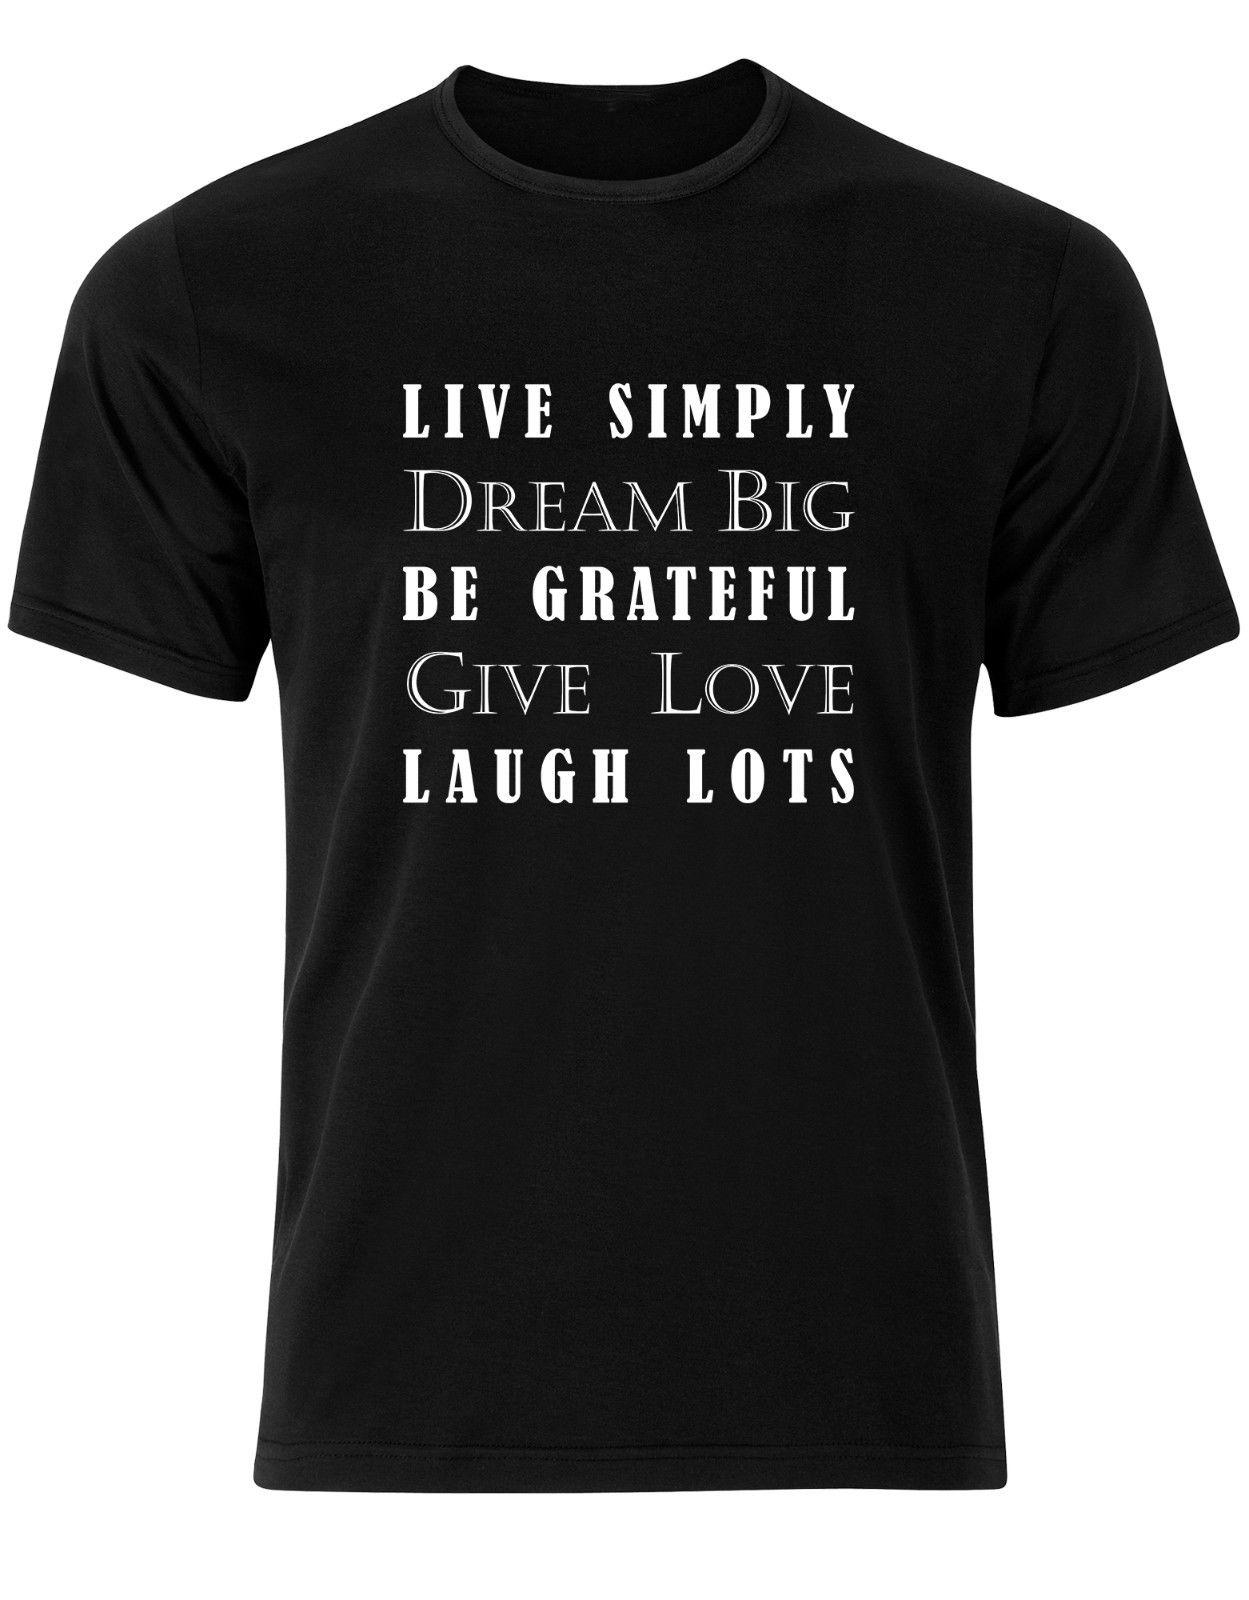 16cd35731 Live Simply Dream Big Mens Tee Shirt Top AJ17 Suit Hat Pink T Shirt RETRO  VINTAGE Classic T Shirt Shop For T Shirts Online T Shirt With A T Shirt On  It ...